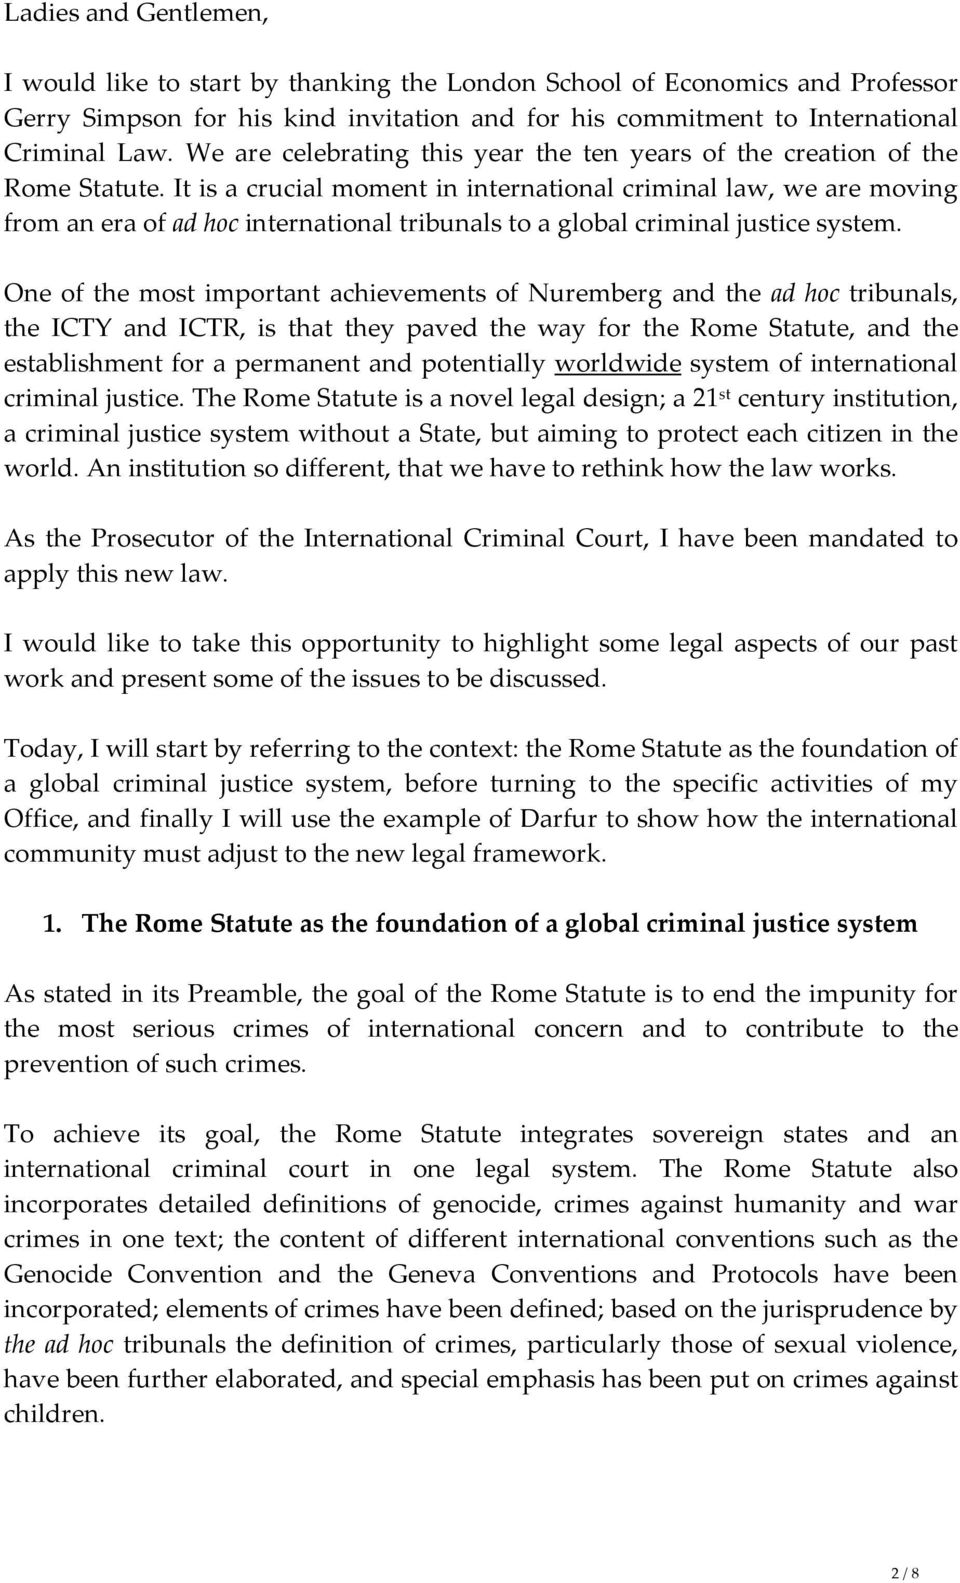 It is a crucial moment in international criminal law, we are moving from an era of ad hoc international tribunals to a global criminal justice system.